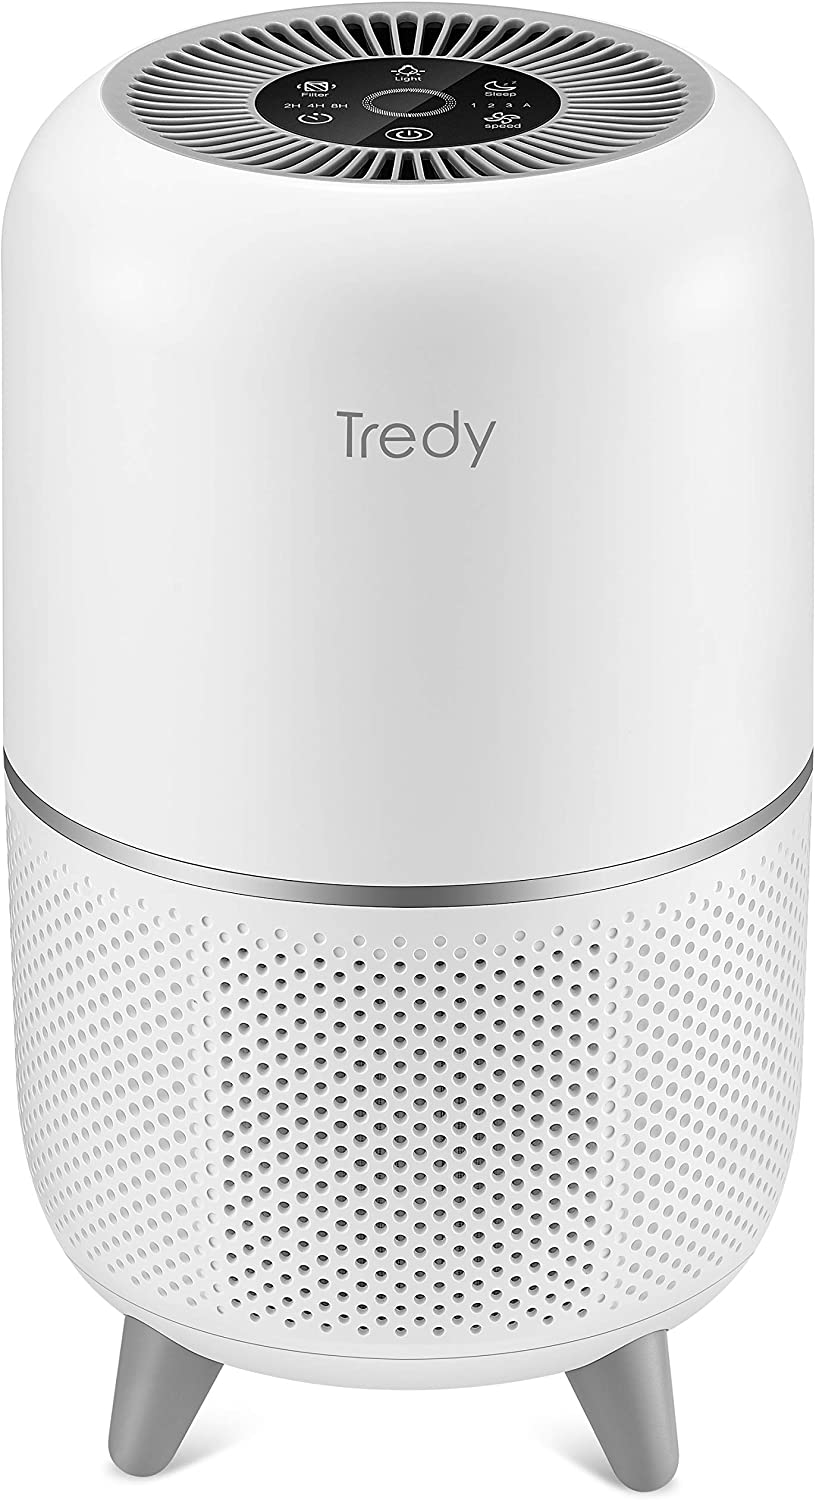 TREDY Hepa Air Purifier for Home 200 Sq.ft Large Room with Air Quality Sensor, Air Filter for Allergies and Pets, Eliminates Pollen/Dust/Smoke/Odor for Living Room Bedroom or Office